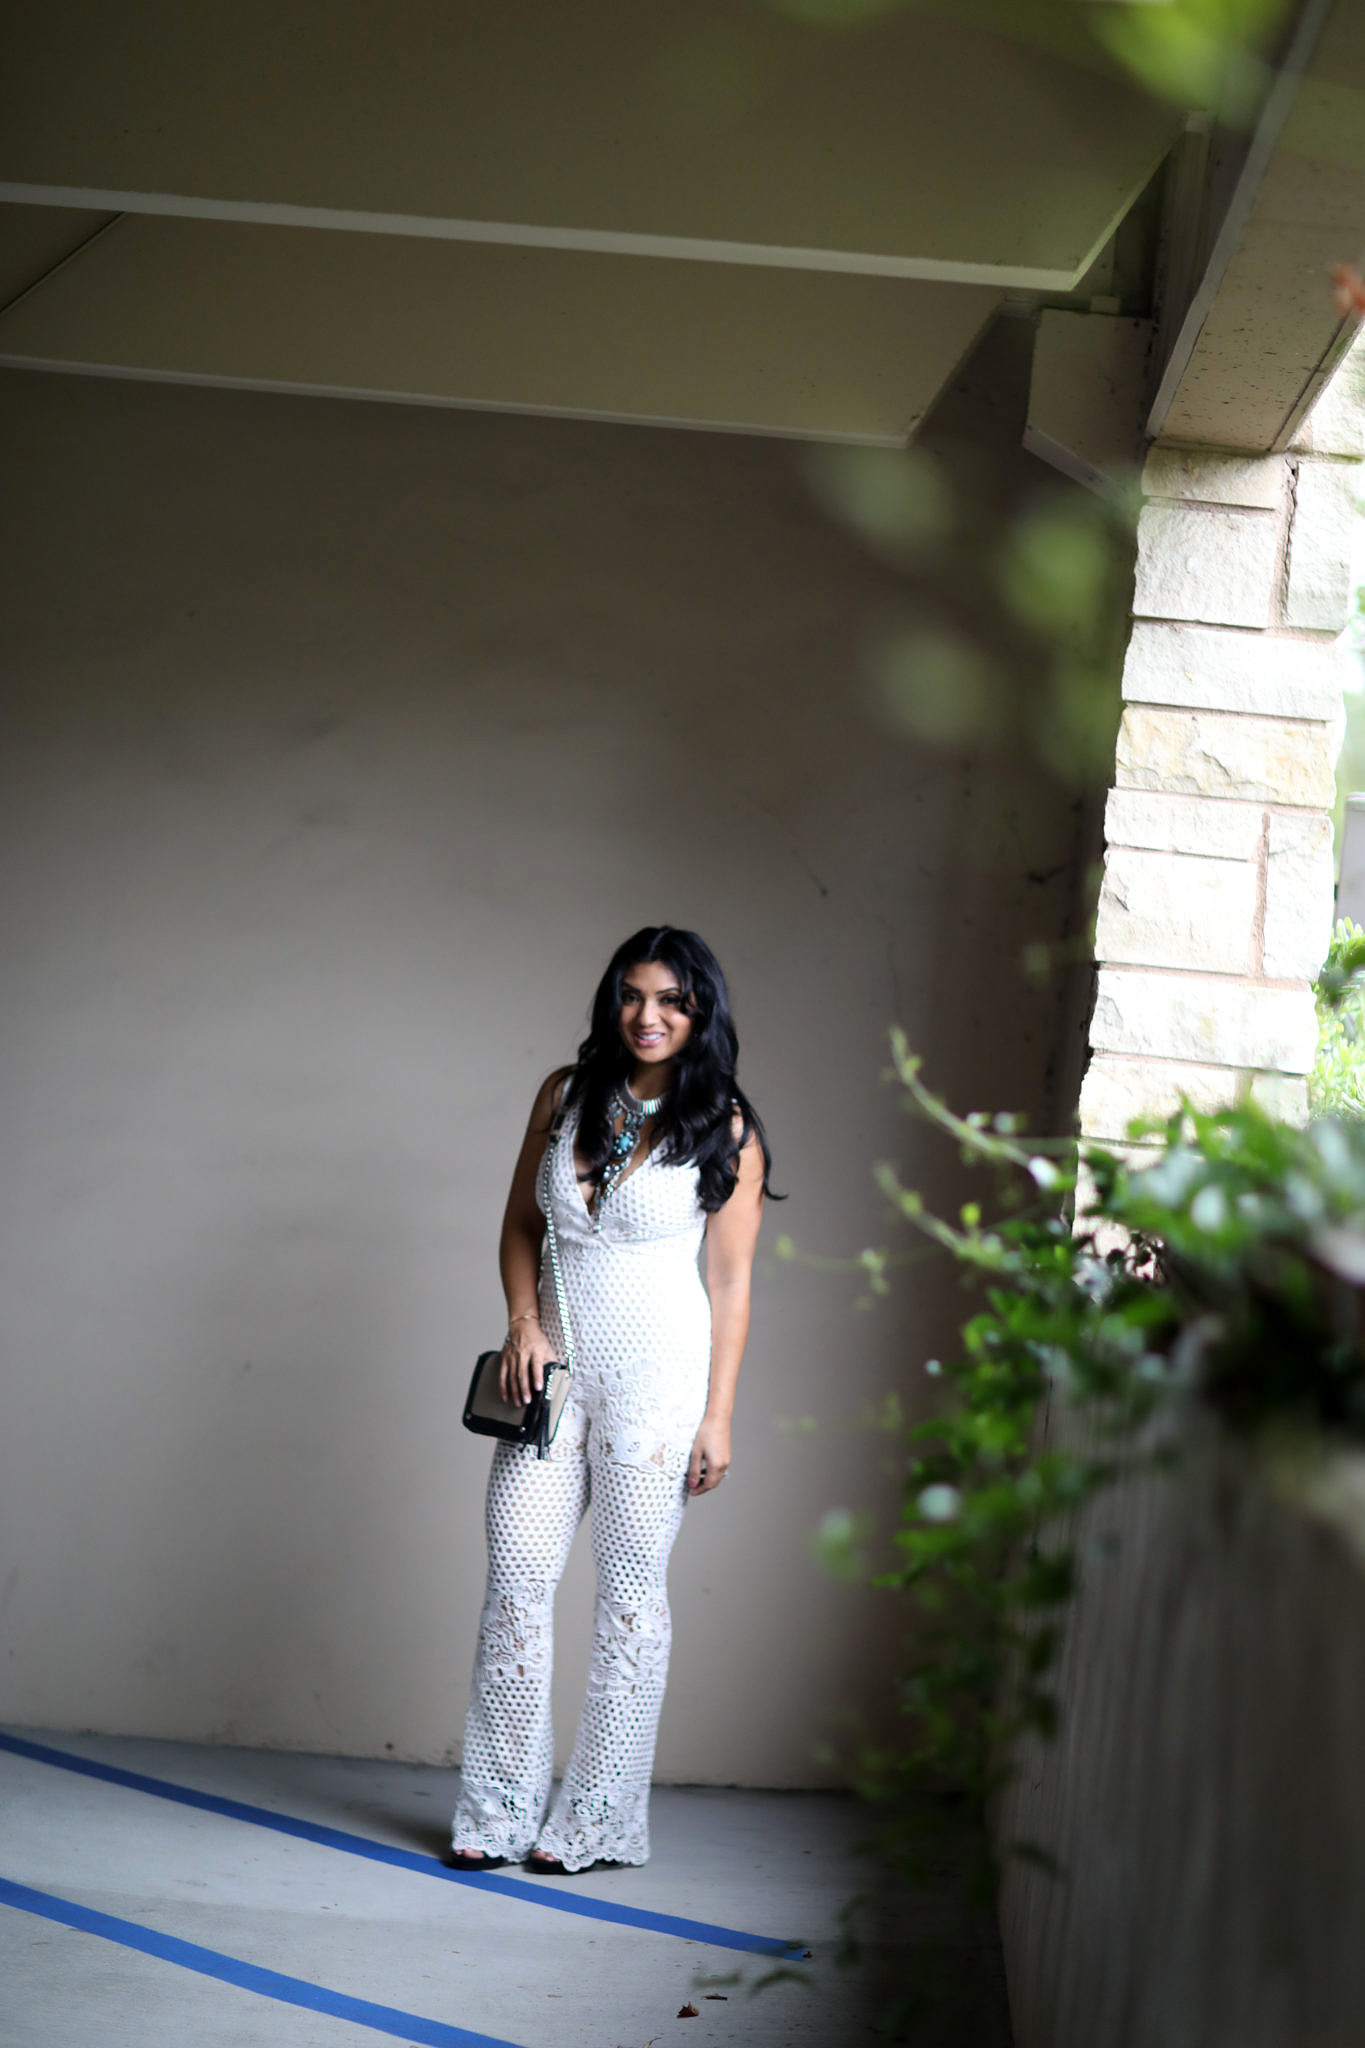 Stylish Vacation Outfit: White Crochet Jumpsuit